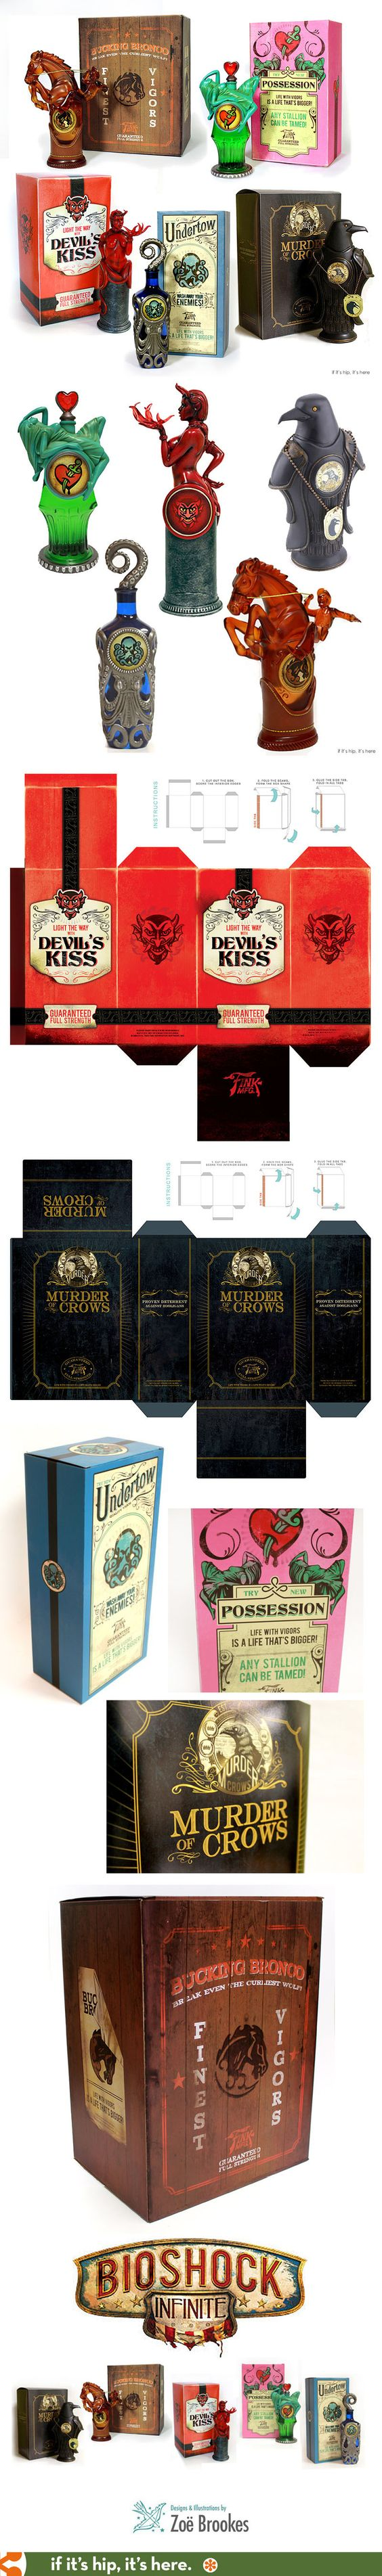 The beautiful packaging and bottle designs for the Replica Vigor Bottles inspired by Bioshock Infinite.